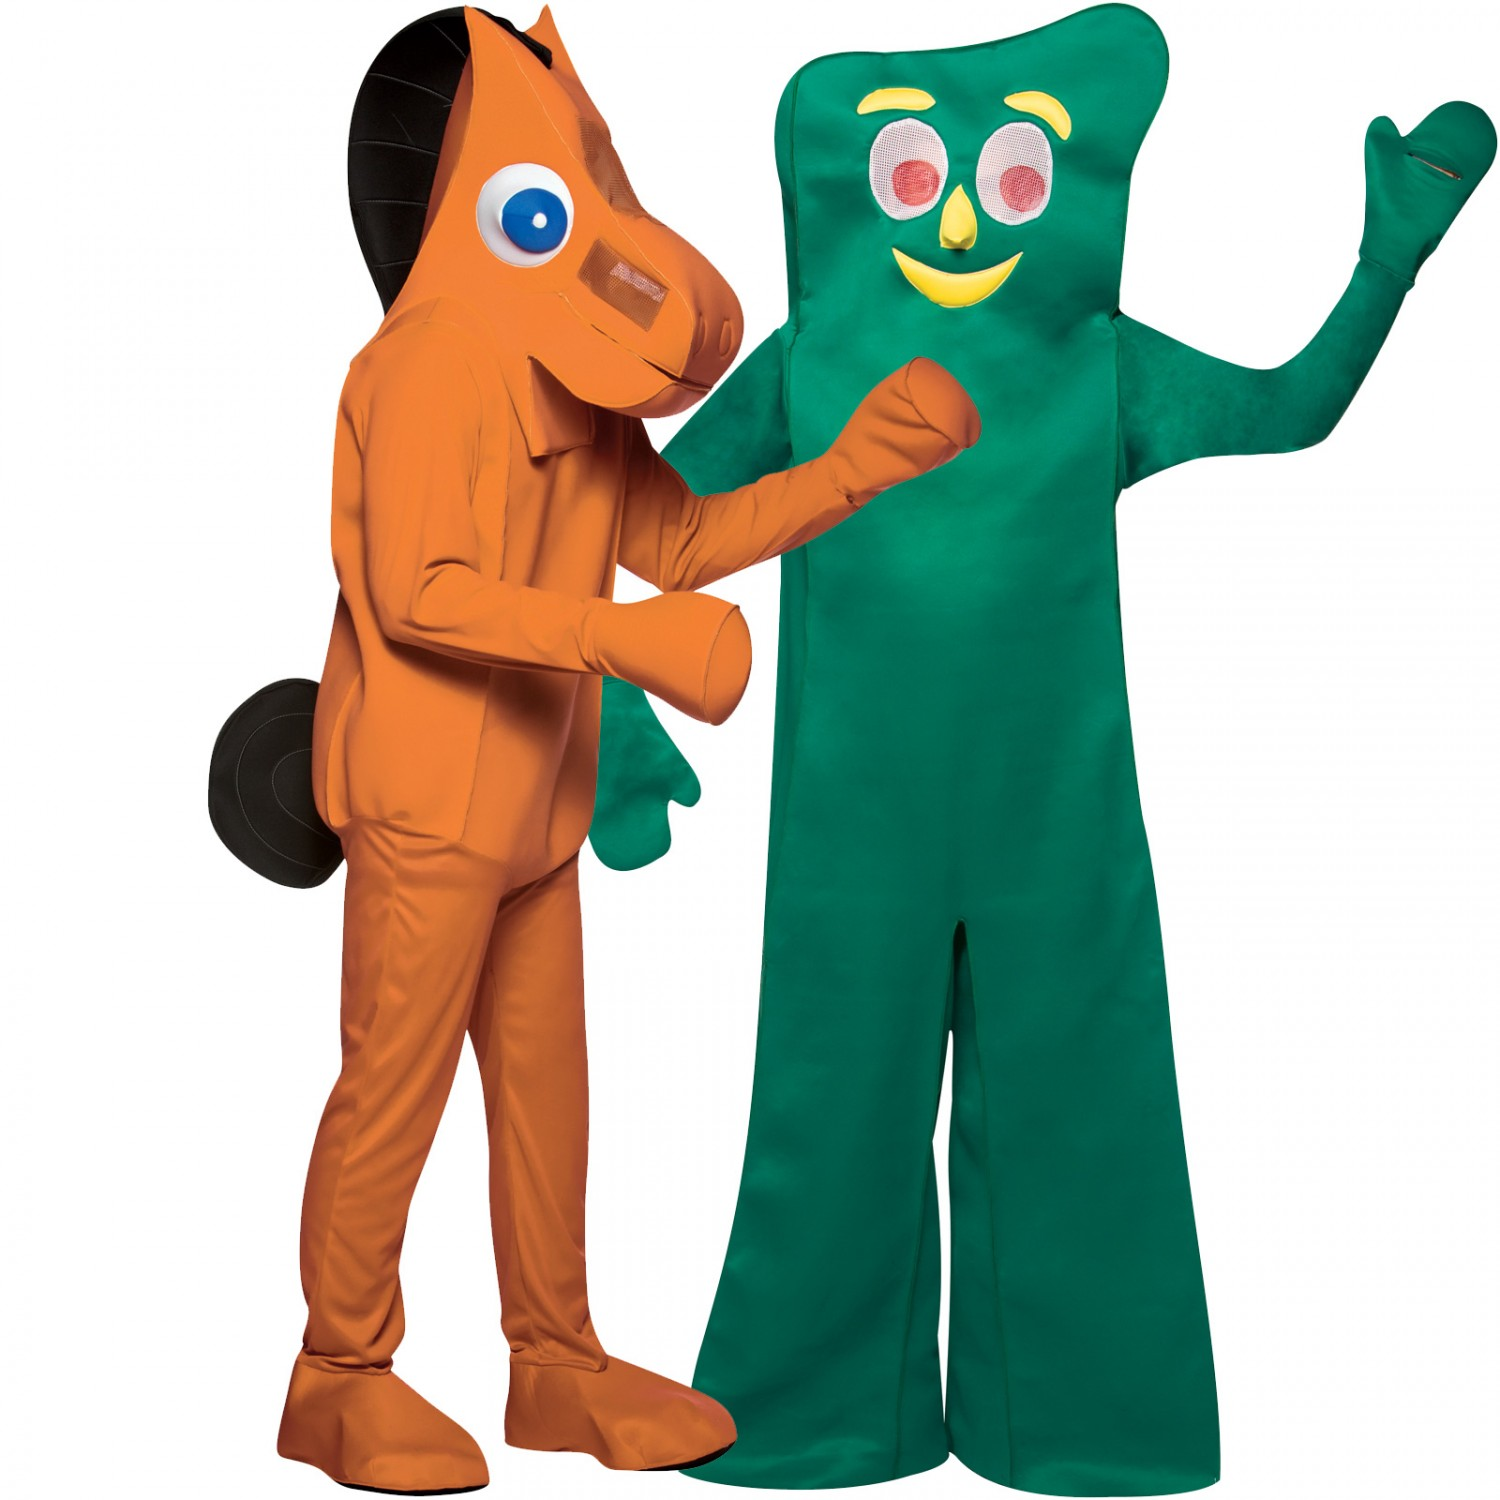 gumby and nopey